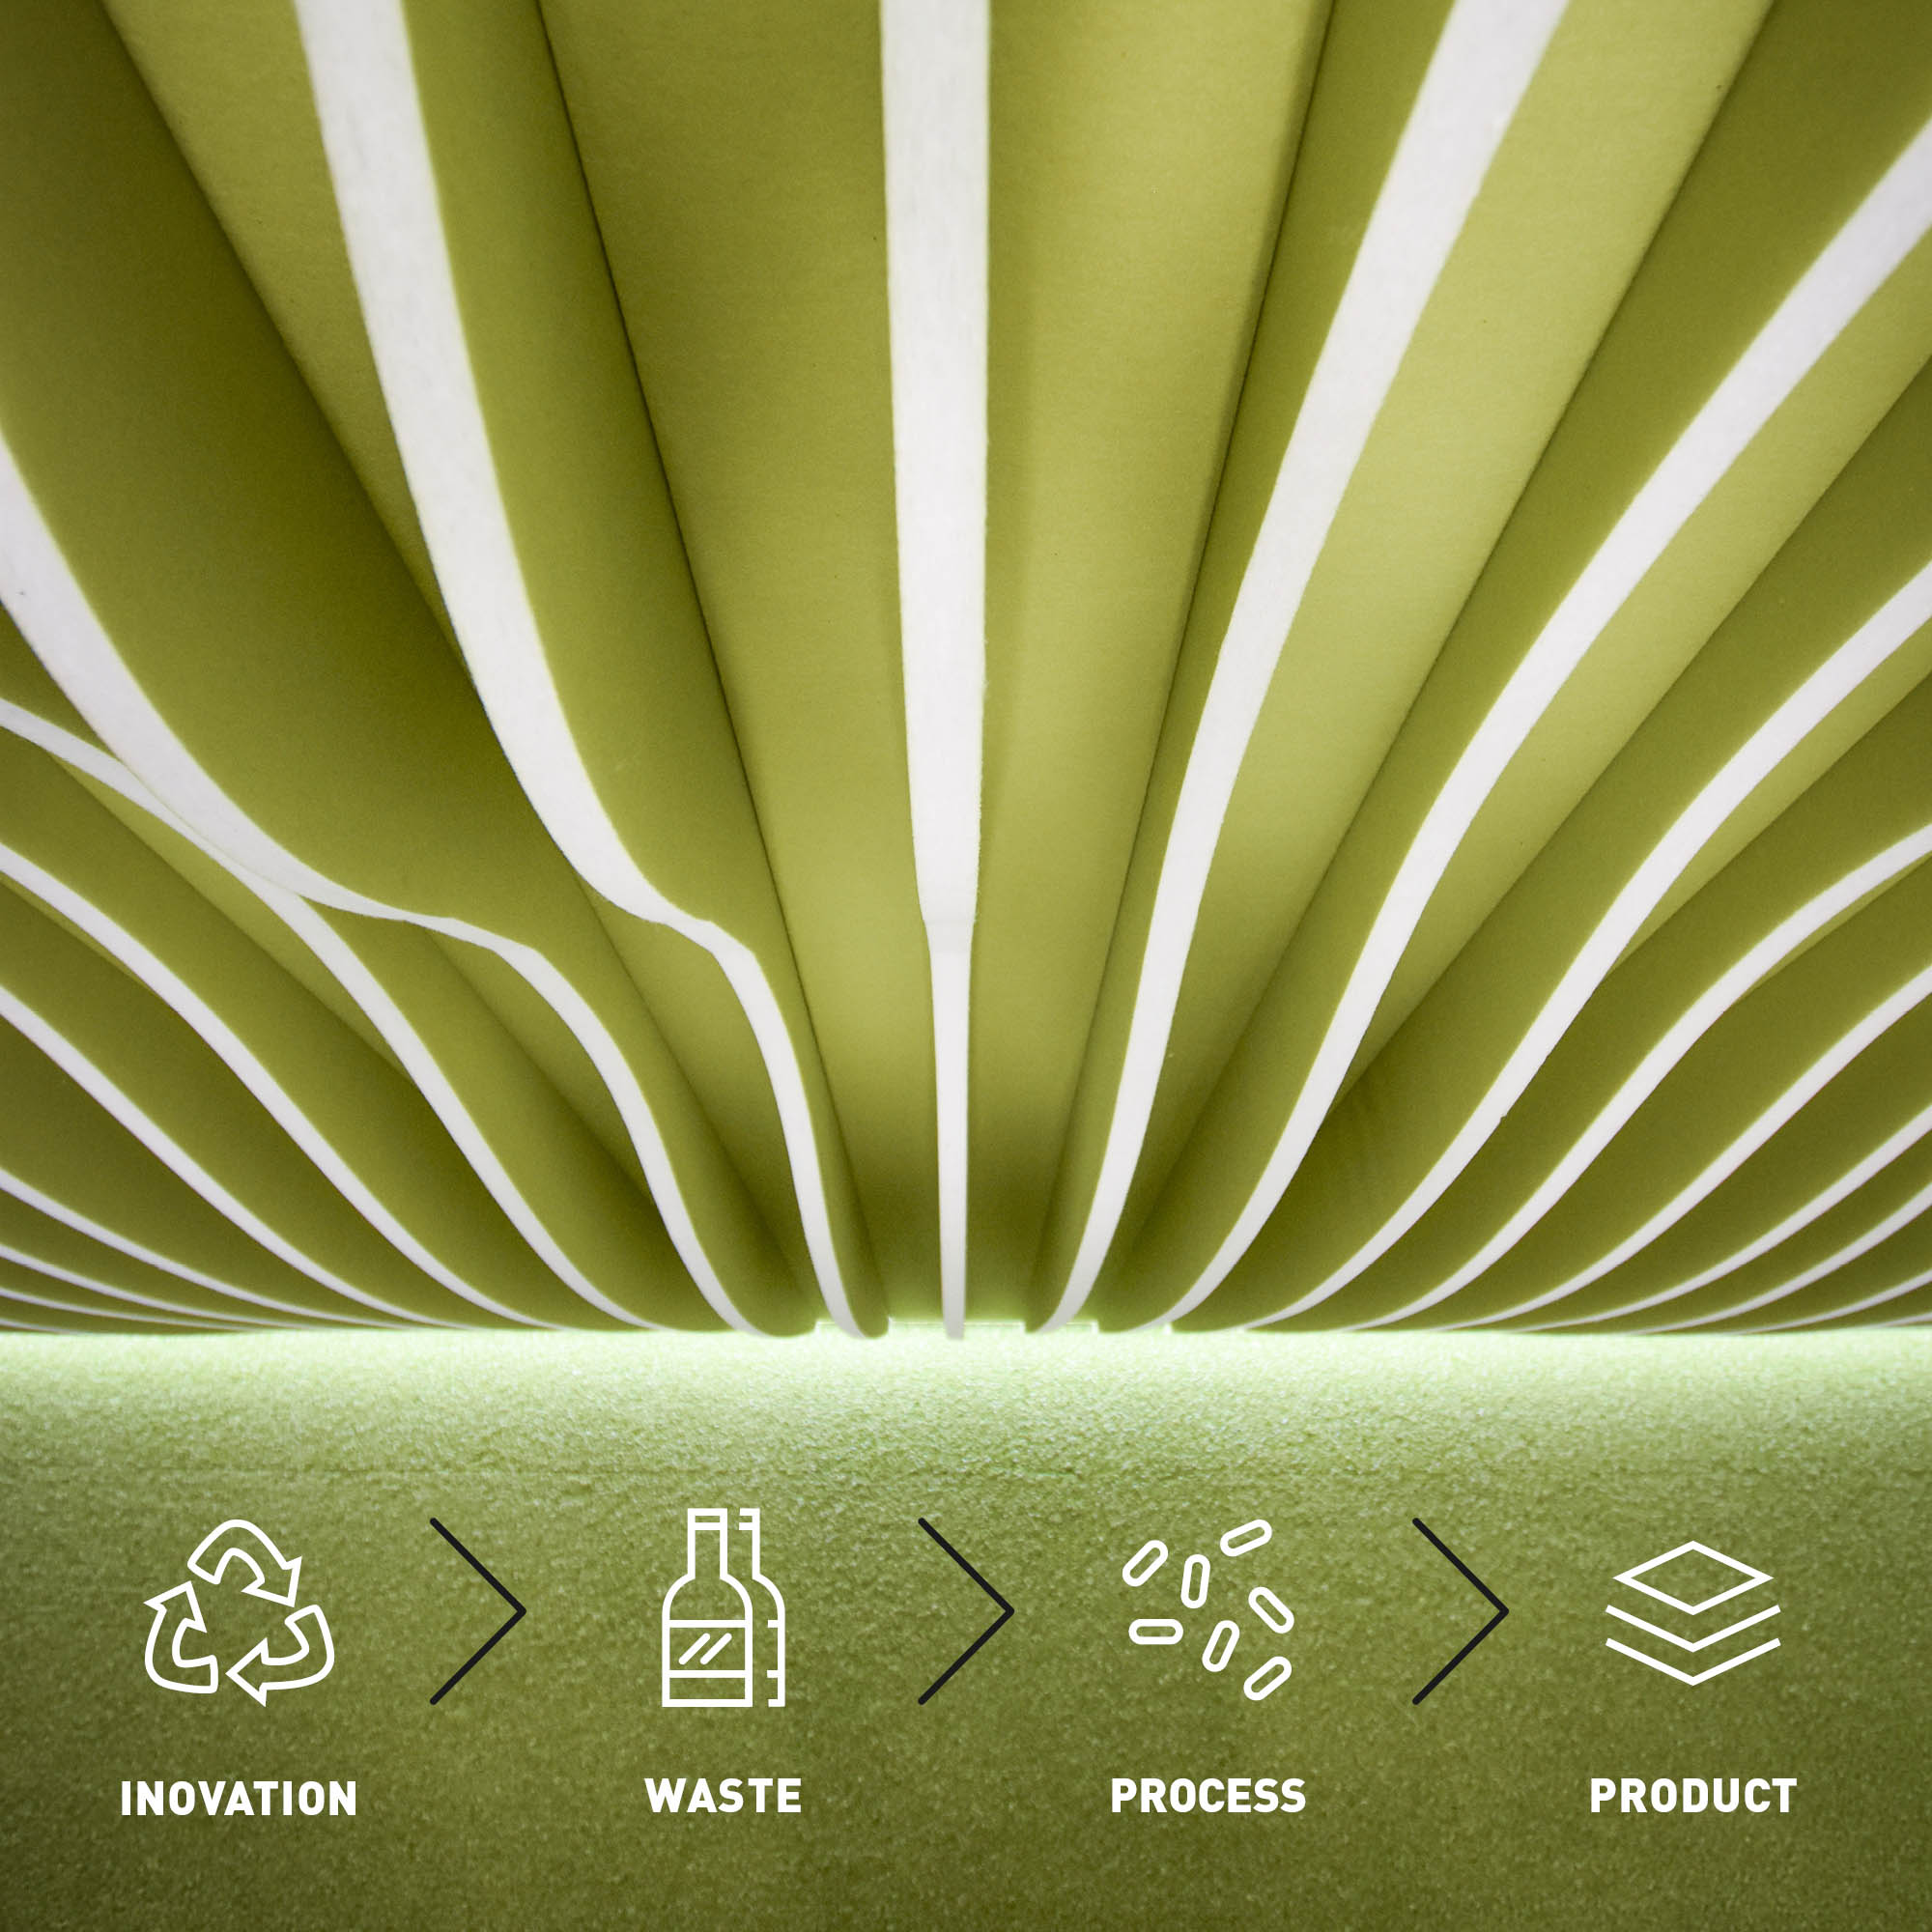 Acoustic panels from recycled PET bottles